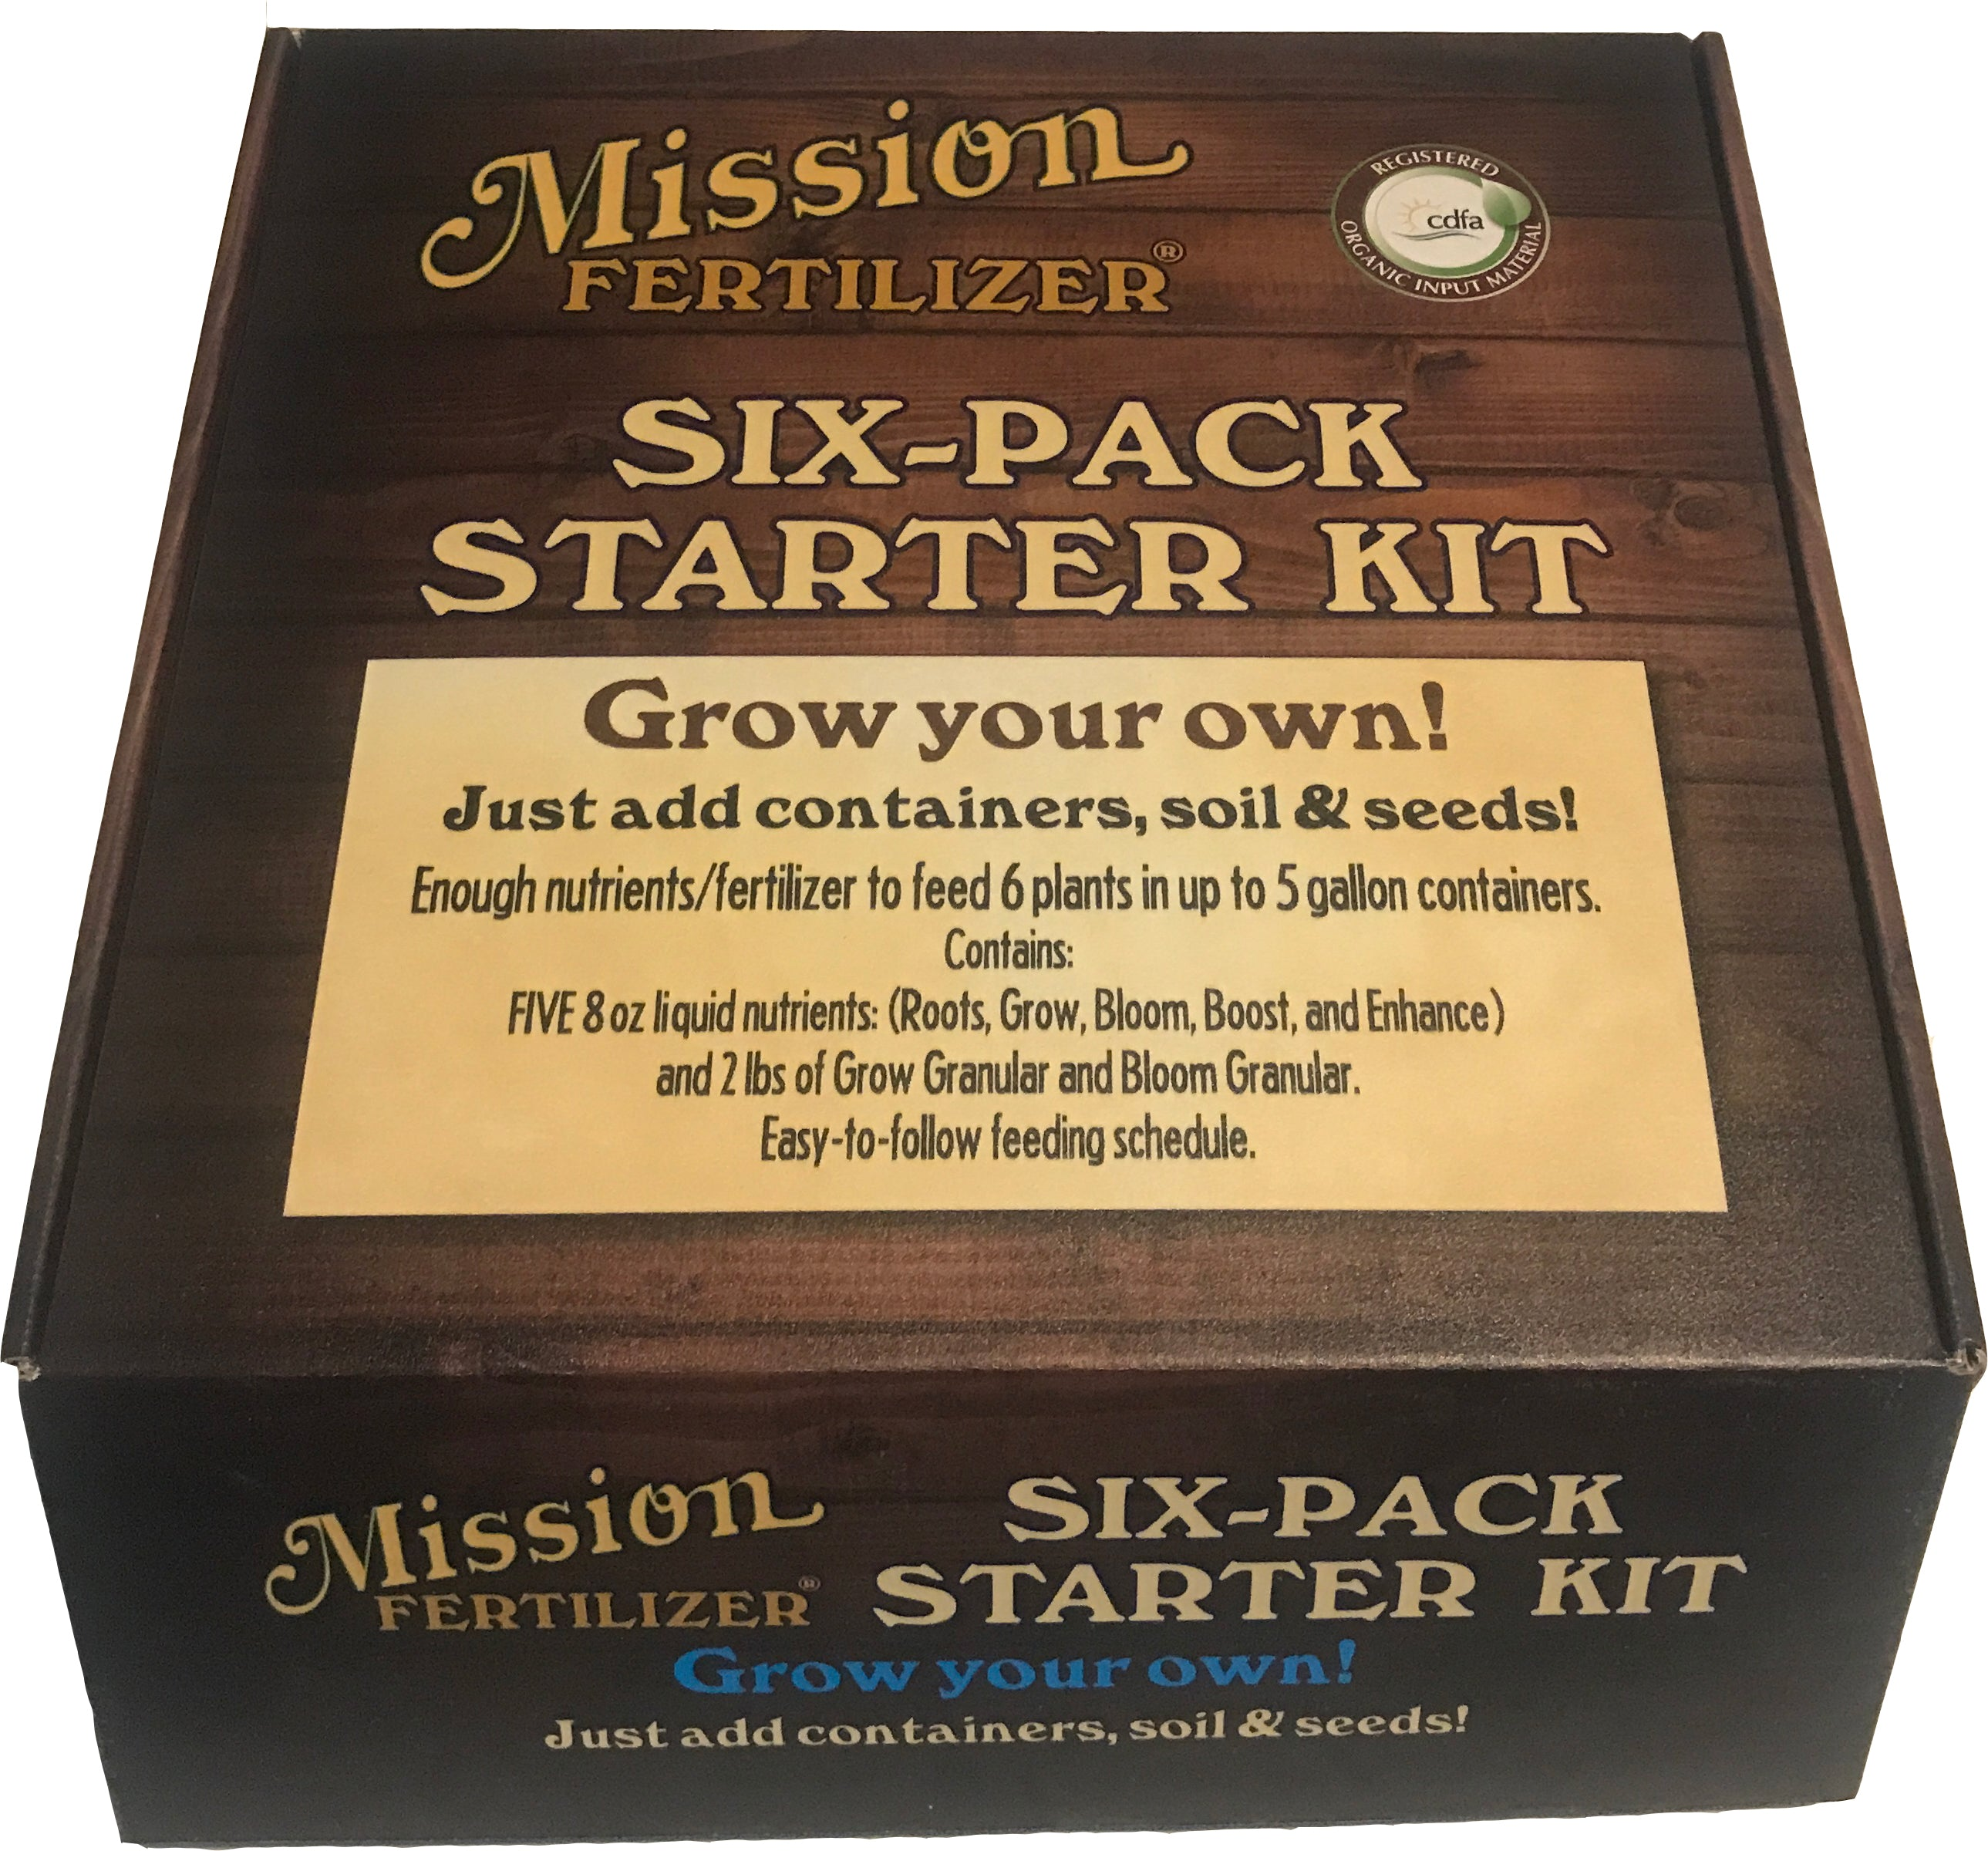 Mission Fertilizer Six Plant Starter Kit - Enough Organic nutrients to grow 6 medicinal plants in up to 5 gallon containers from start to finish.